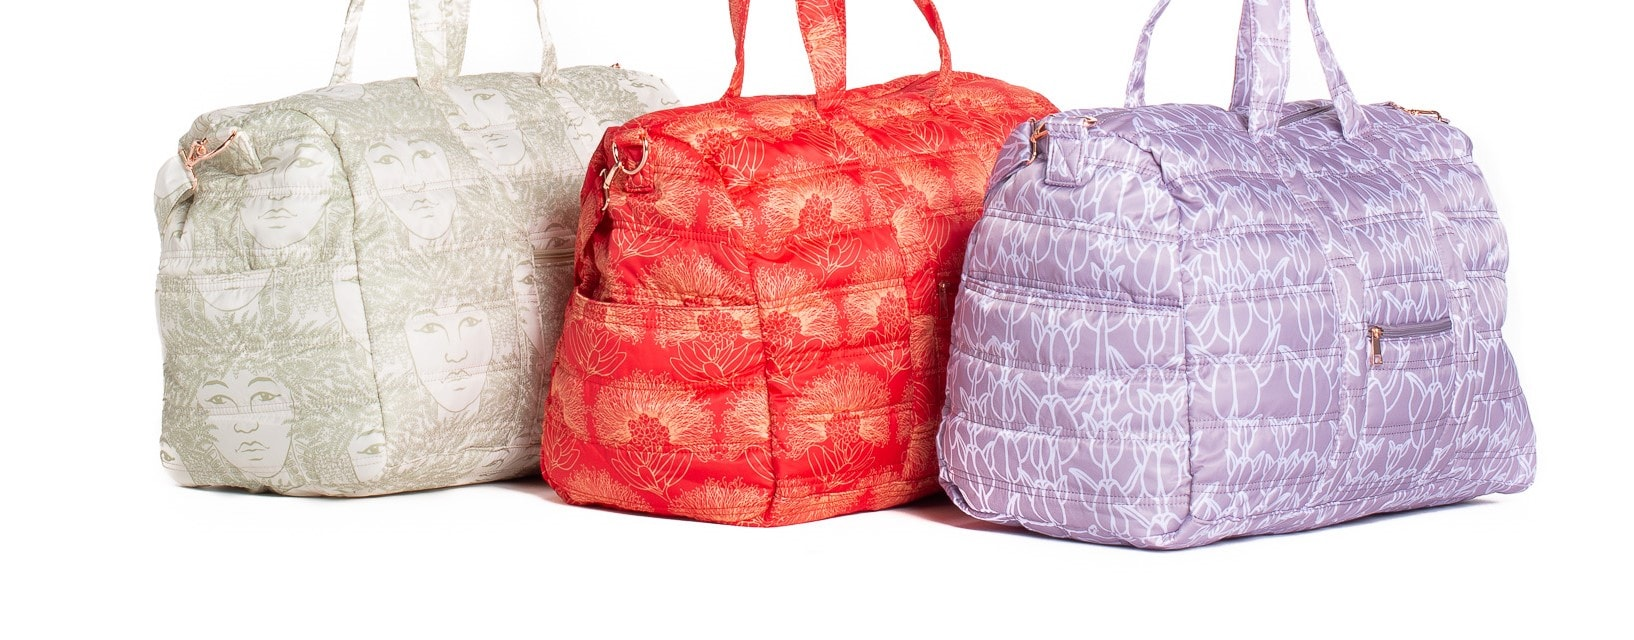 Laulea Bags Trio - Red, Green, and Purple